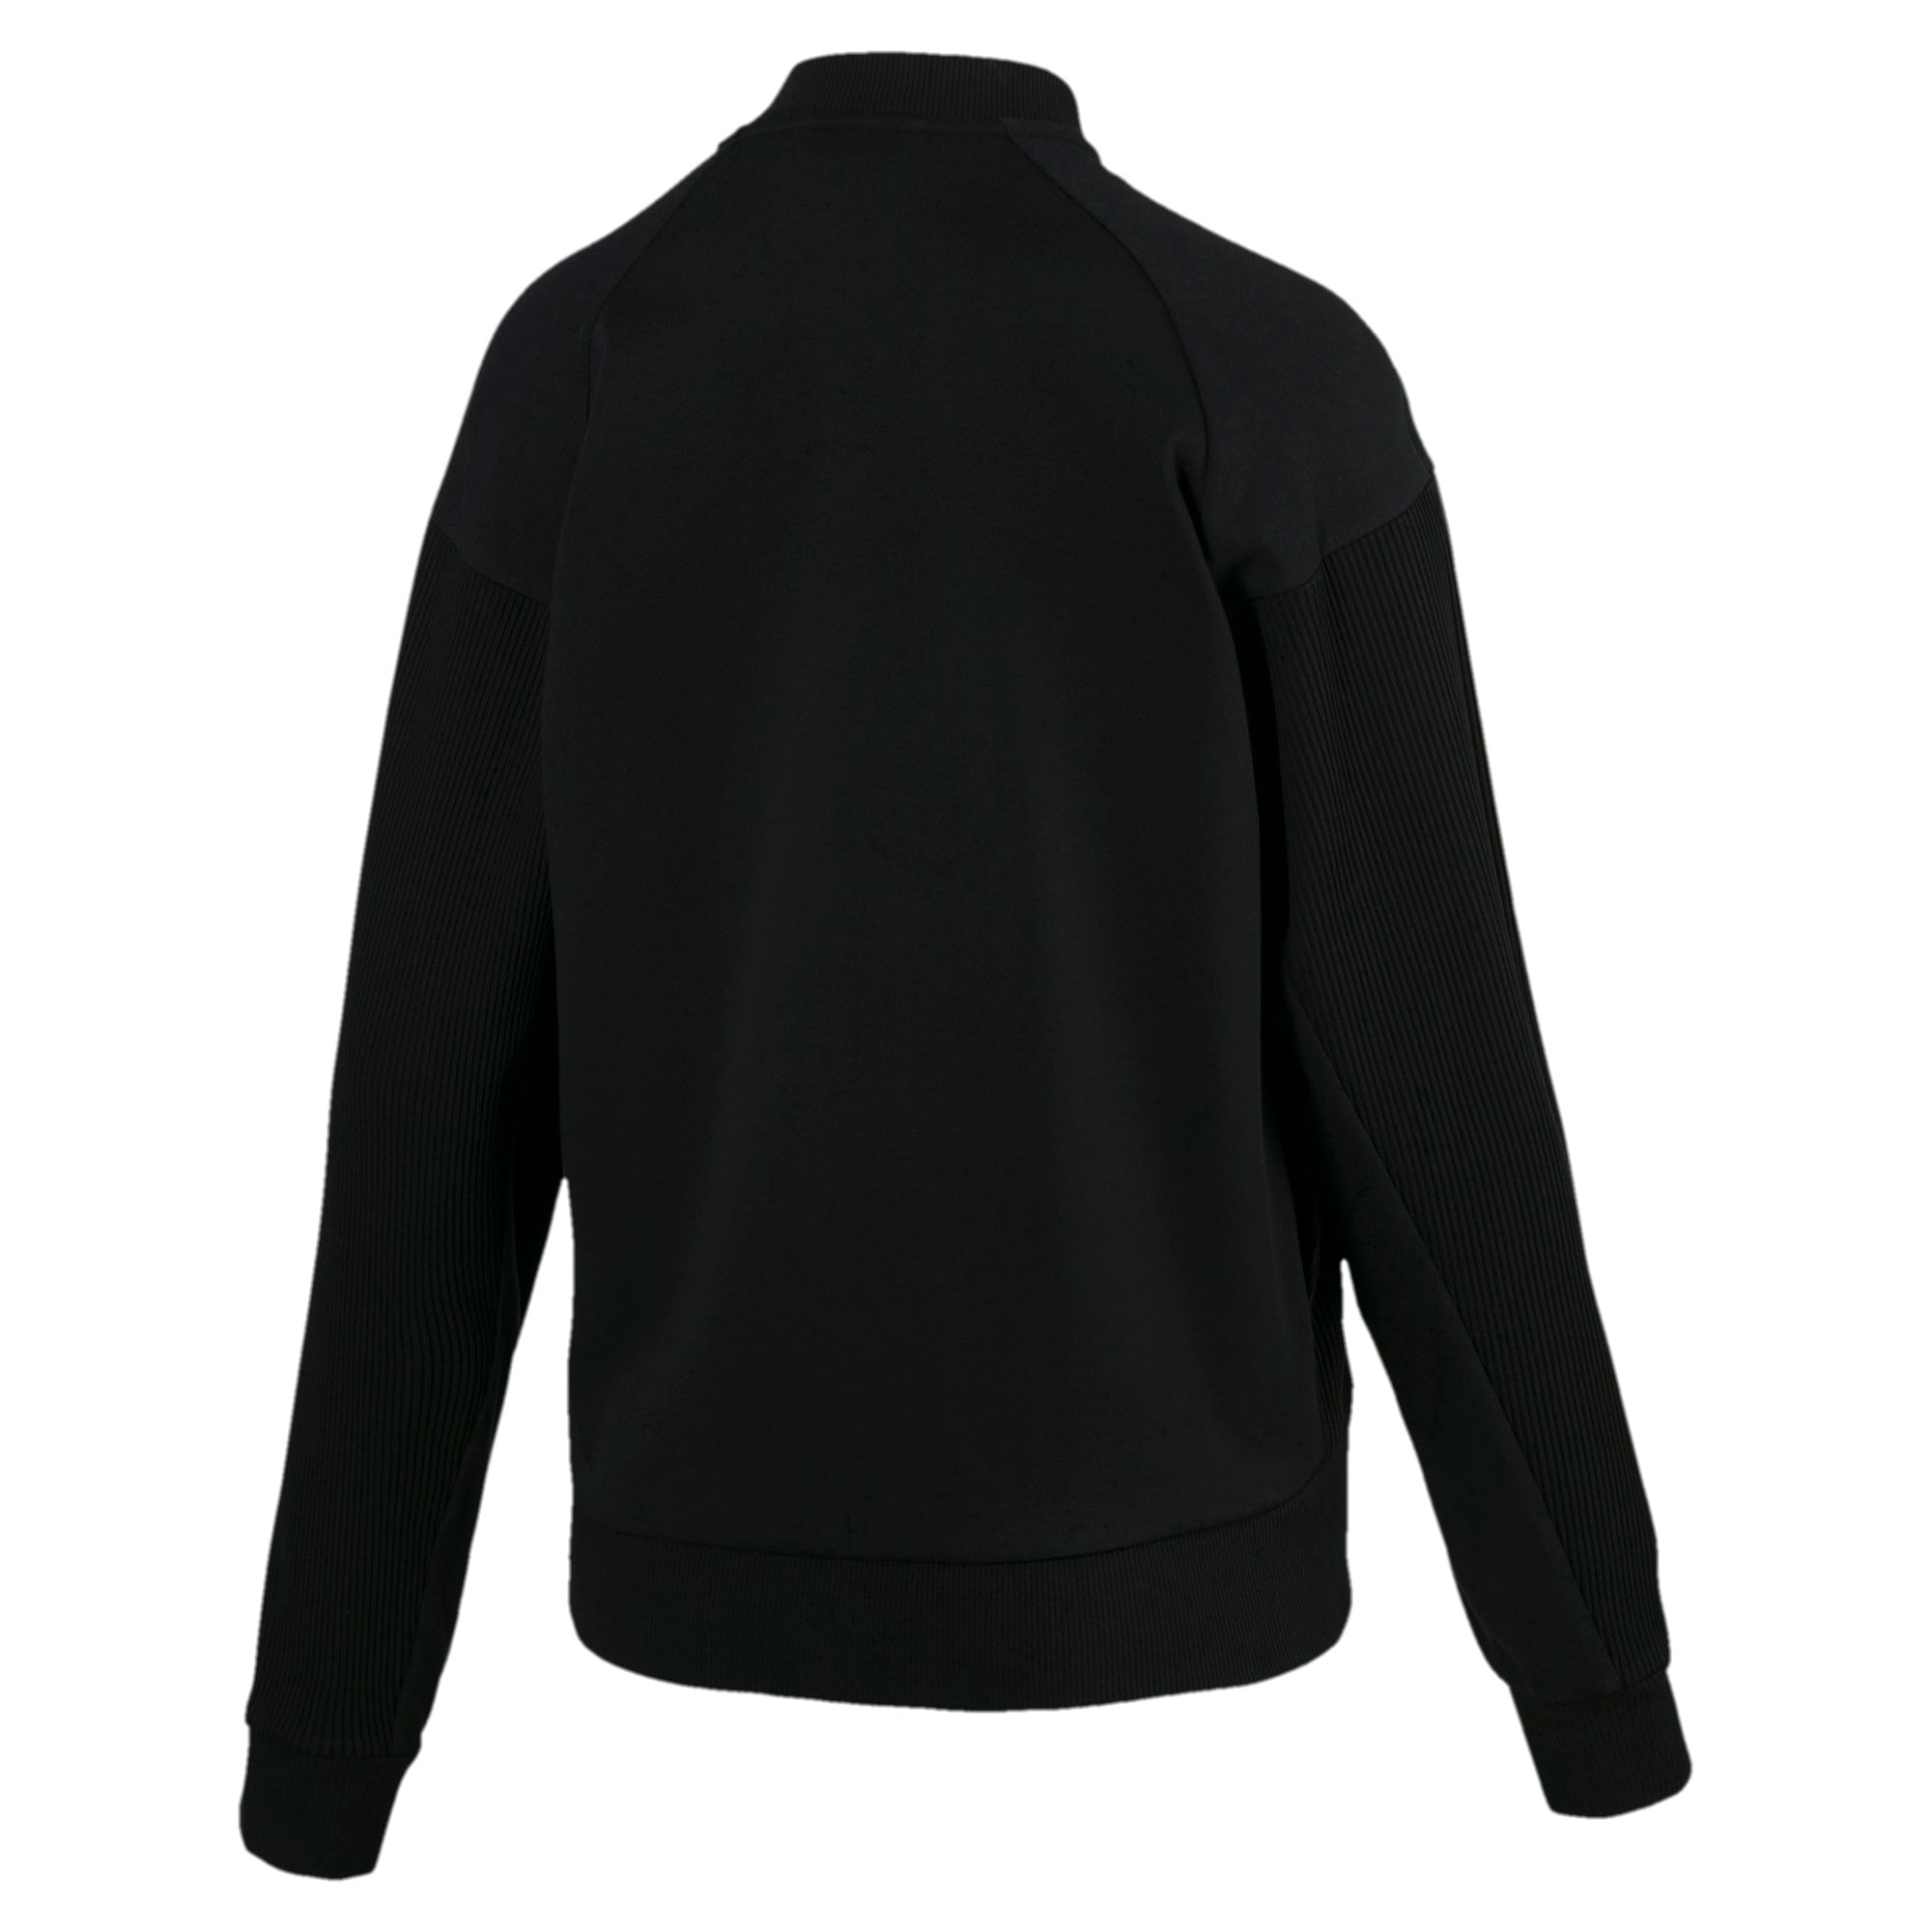 Thumbnail 5 of Fusion Jacket, Cotton Black, medium